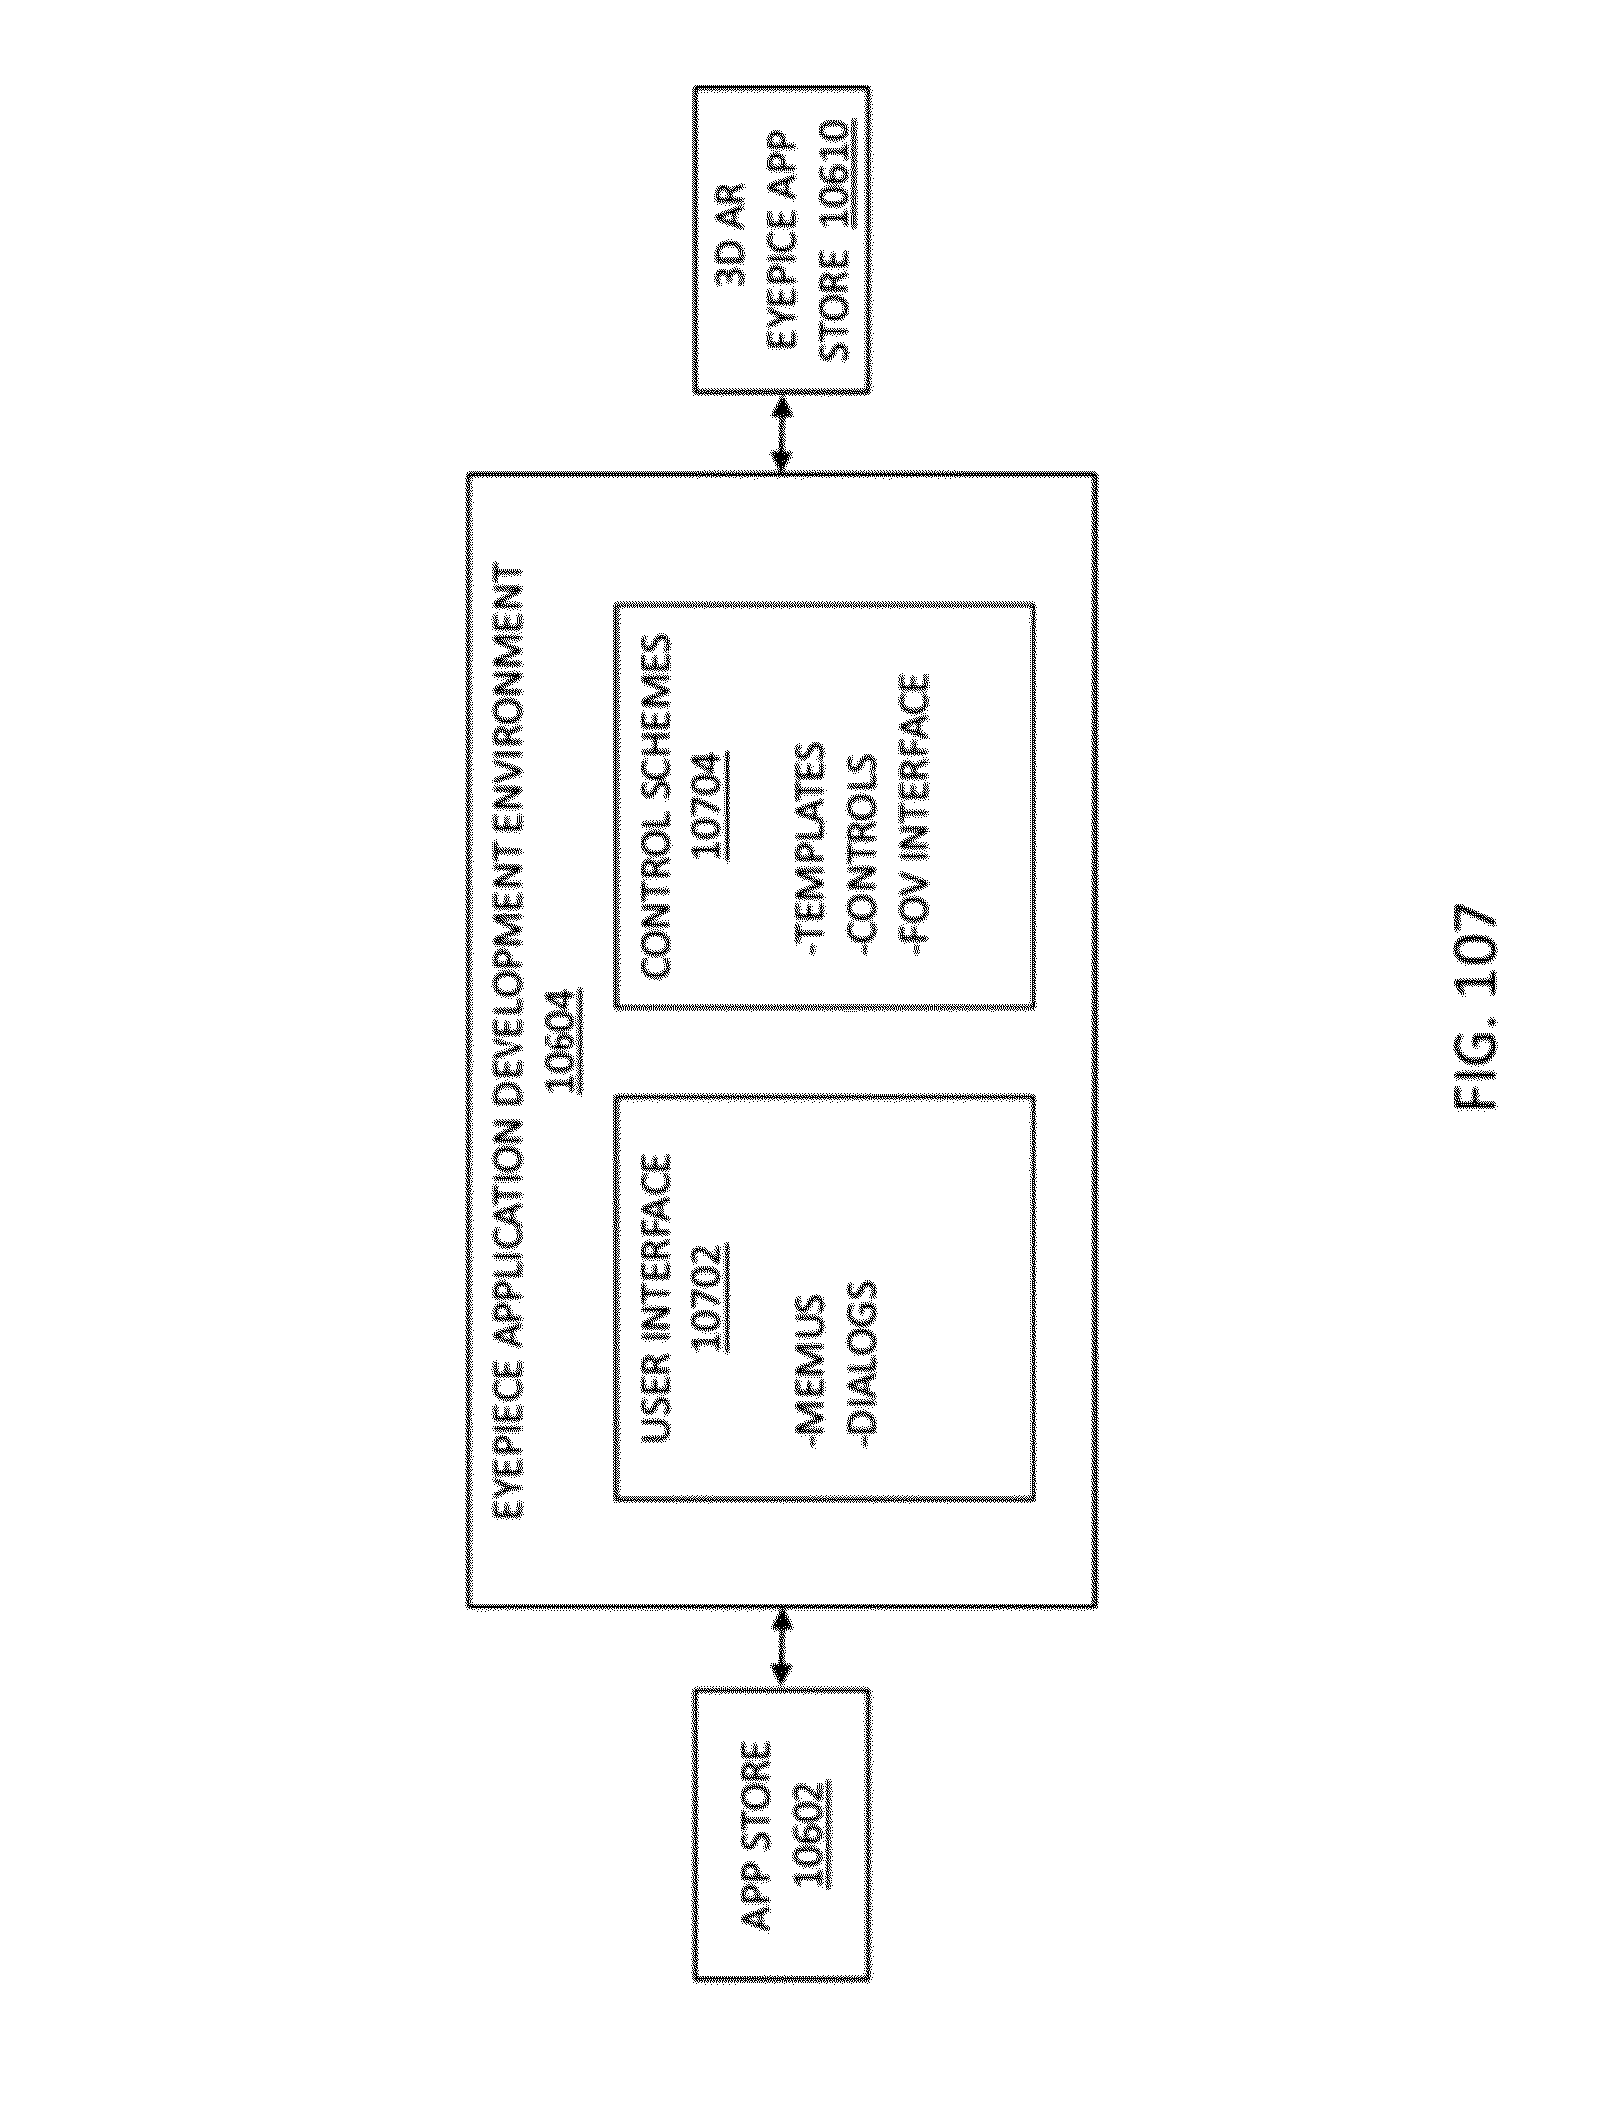 Patent Us 8482859 B2 Ci 65 Central Locking Interface Wiring Diagram Images